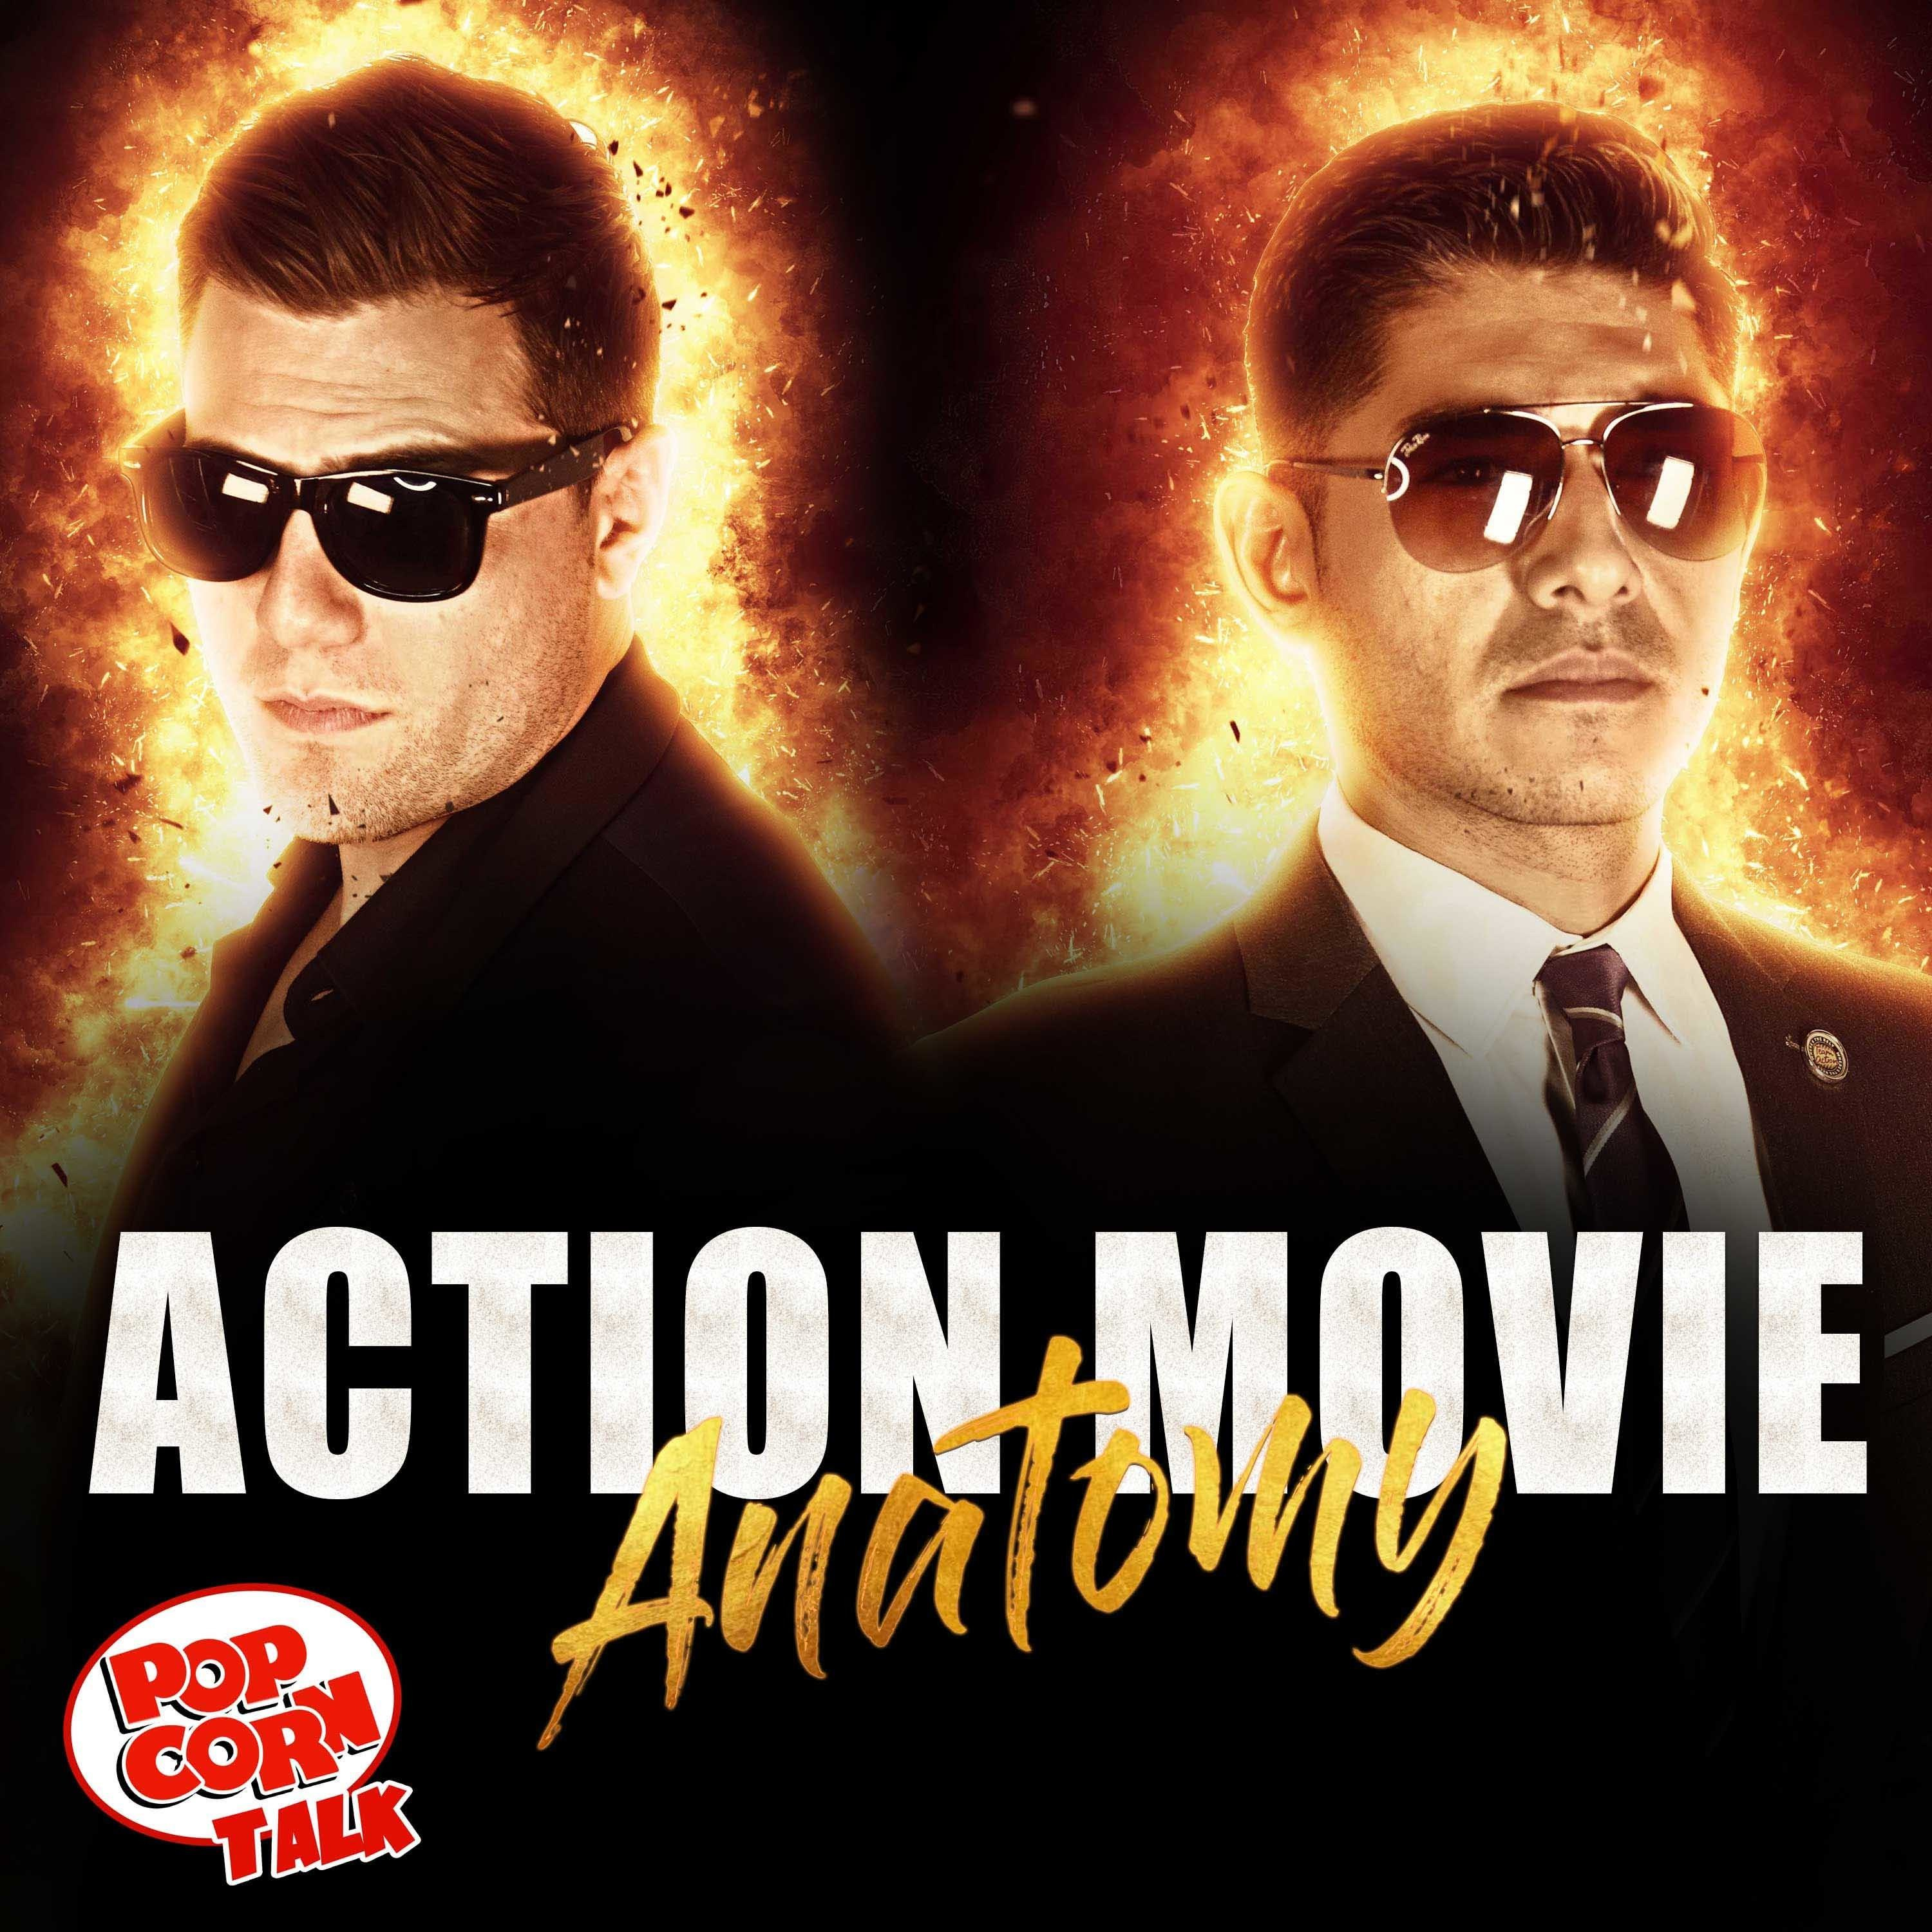 Action Movie Anatomy